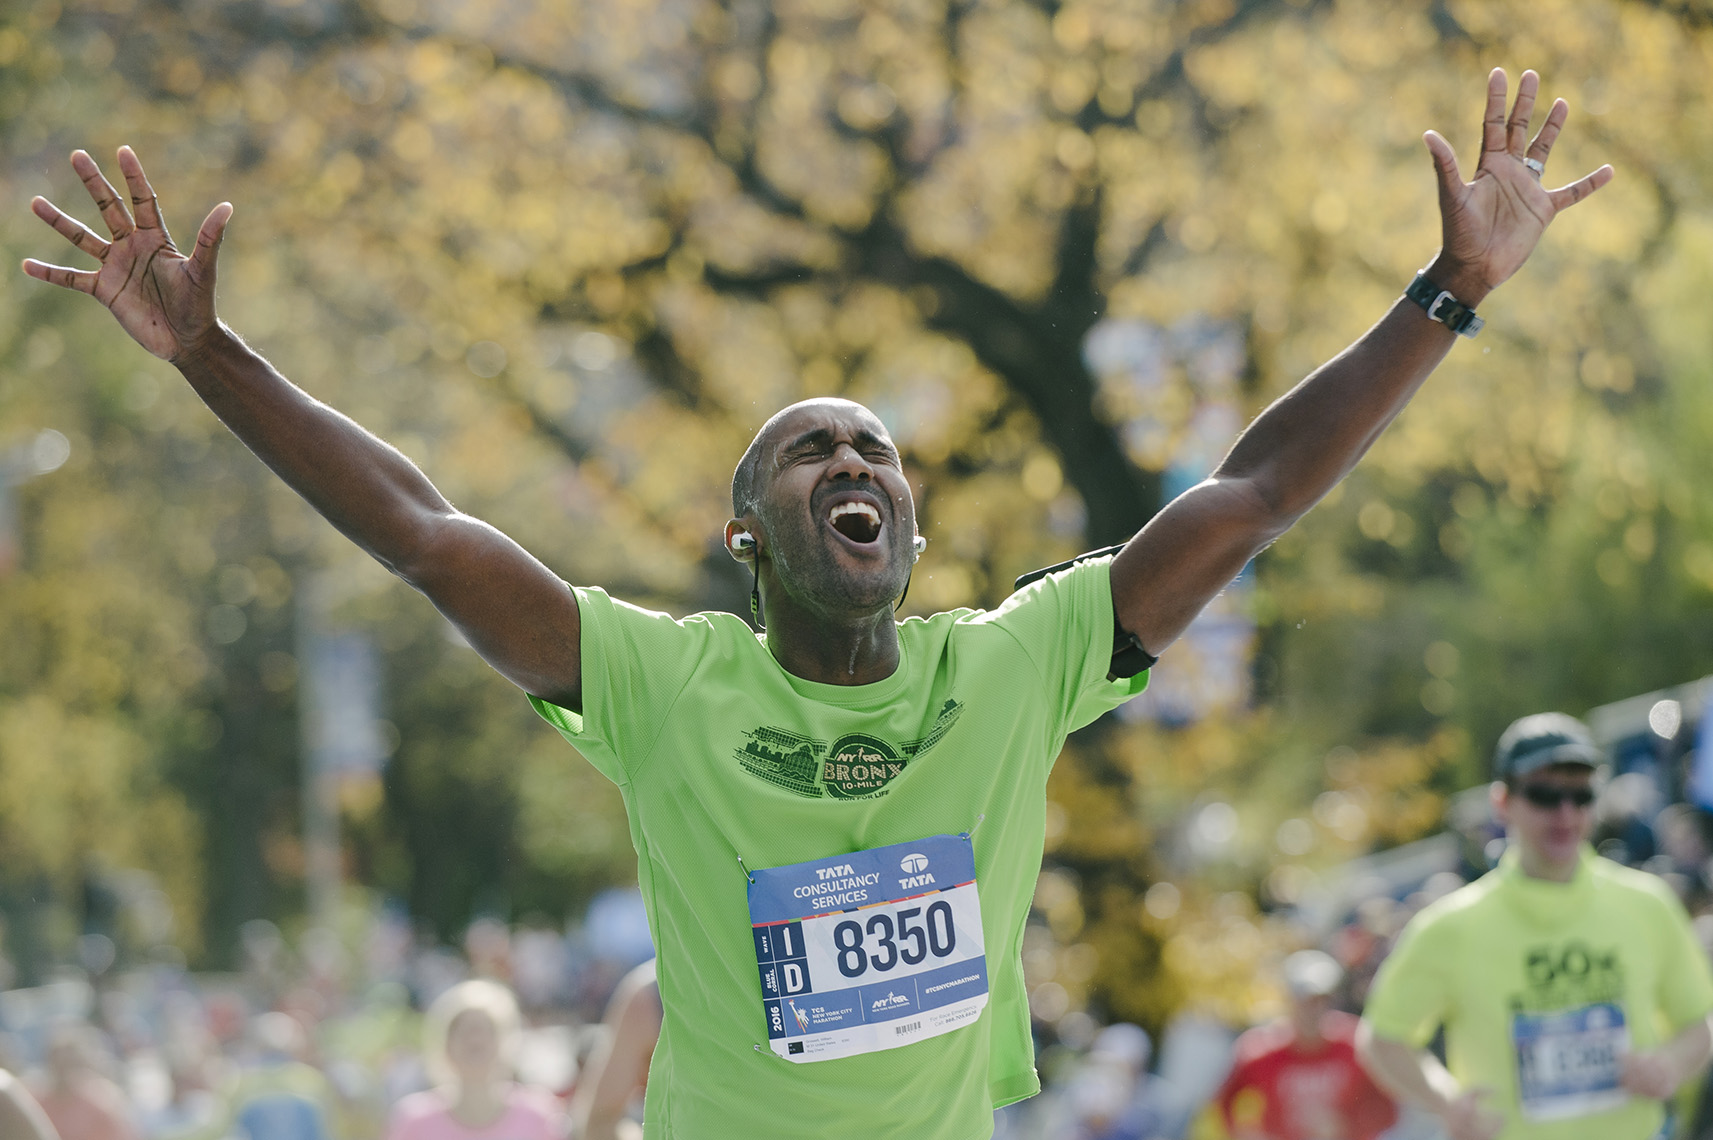 new-york-city-marathon-finisher-central-park